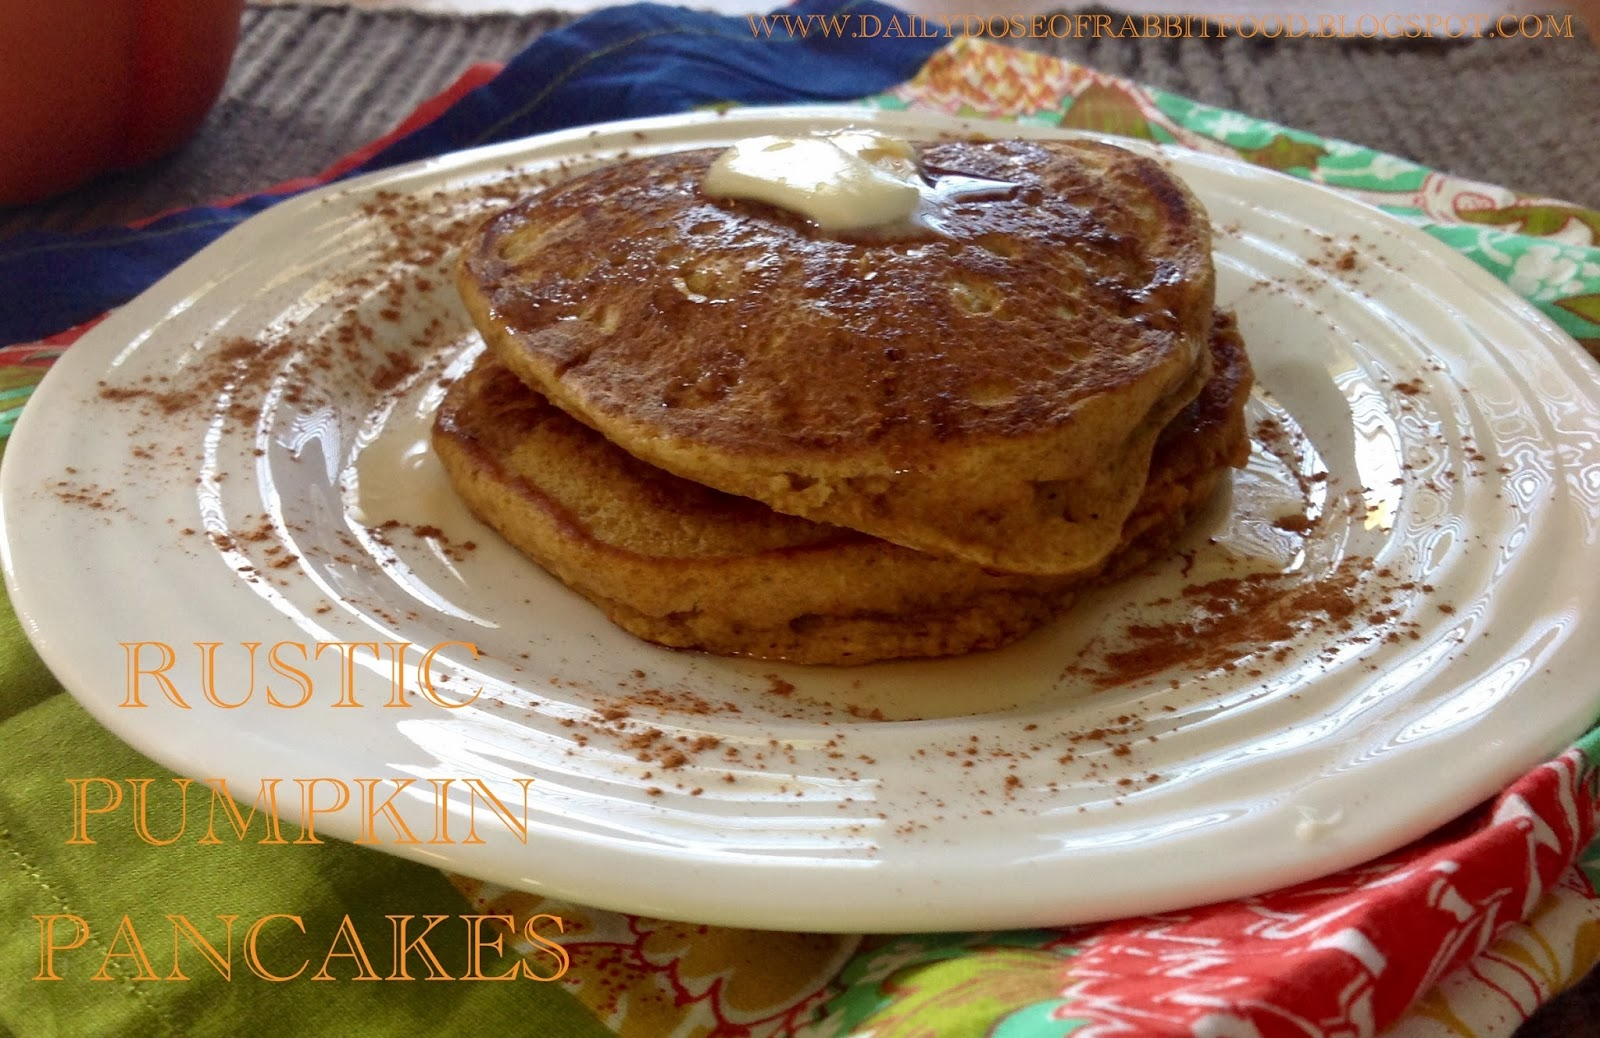 Pumpkin Pancakes made with half whole wheat flour and coconut oil